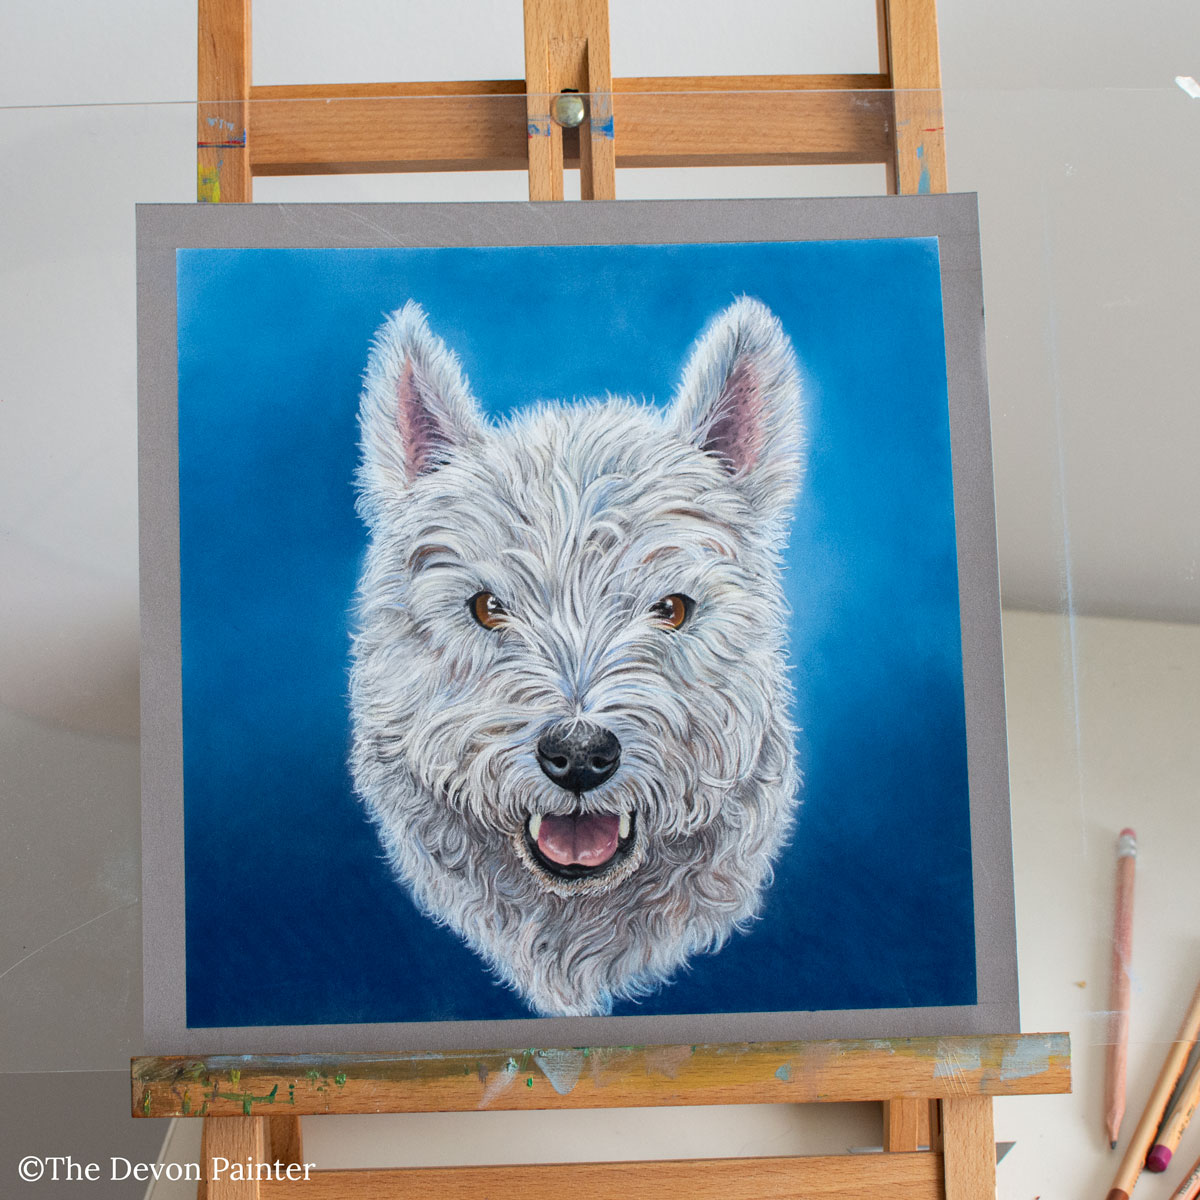 Pastel Pencil commission of Freddy the Westie